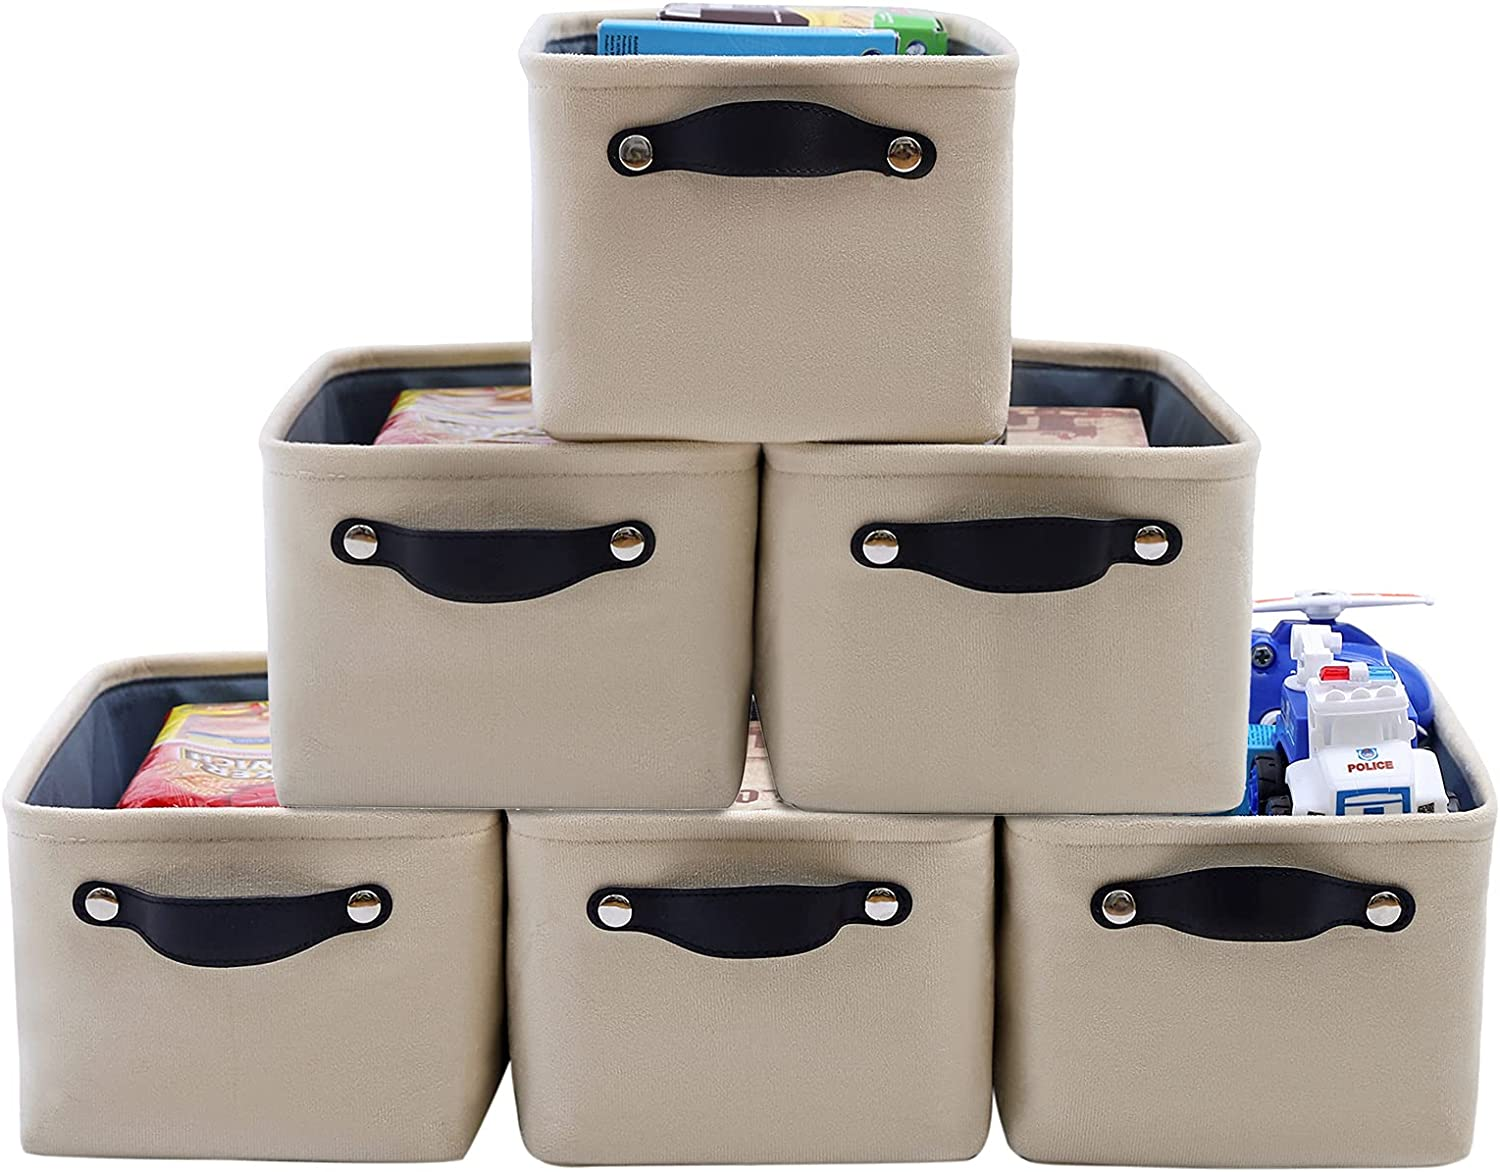 FENQDOOU Storage Bins, Open Storage Basket with Sturdy Handles,Collapsible 6 Pack Storage Box Suitable for Home, Closet, Office, Nursery ,Shelf 12.2x8.2x6.2 inches(Beige)